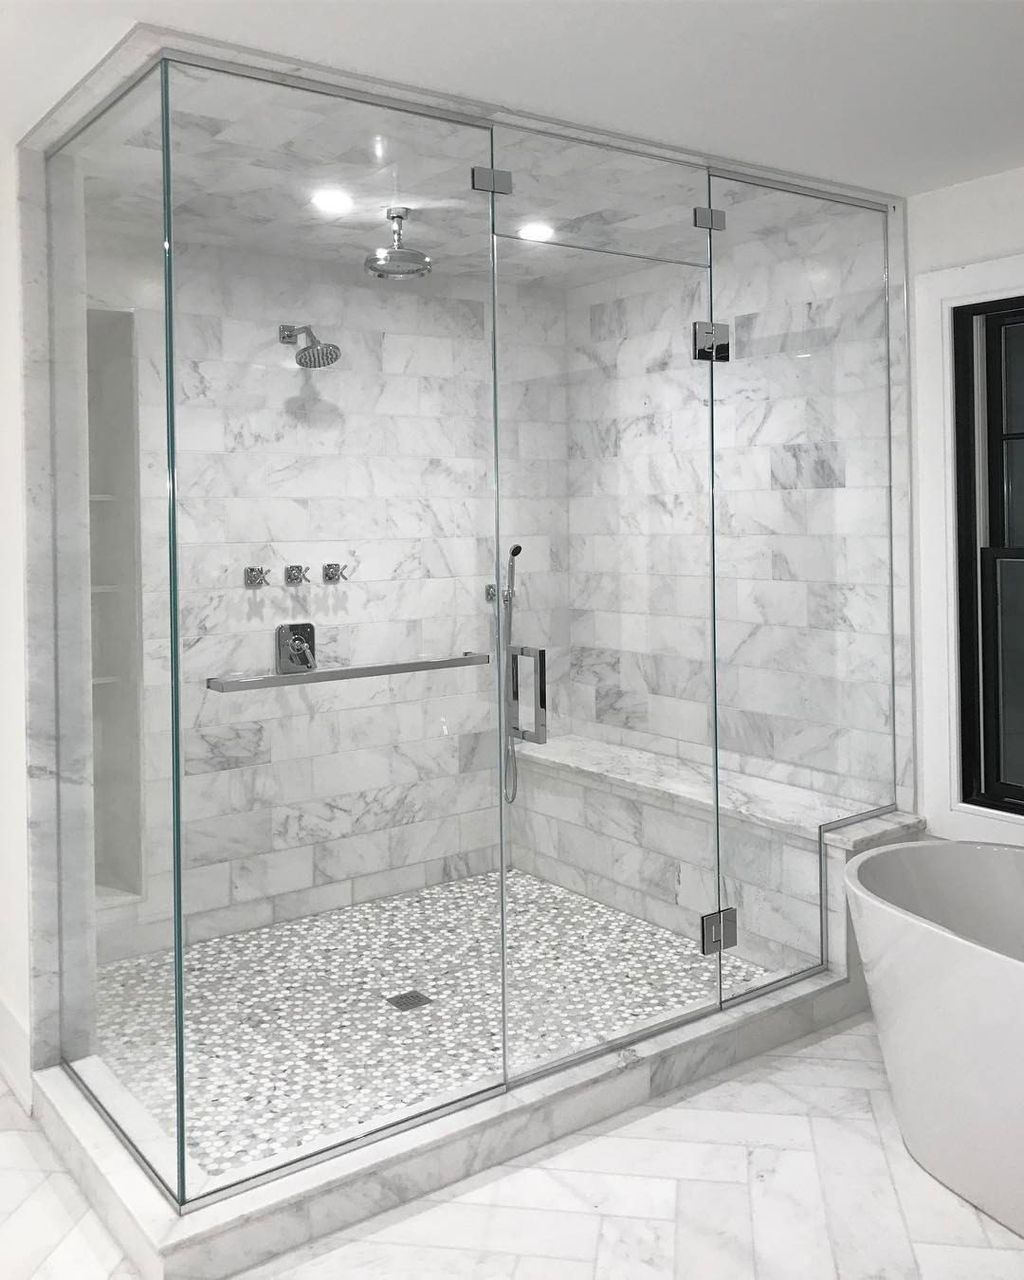 42 Perfect Shower Design Ideas To Remodel Your Bathroom Badezimmerideen Badezimmer Badezimmer Umgestaltung